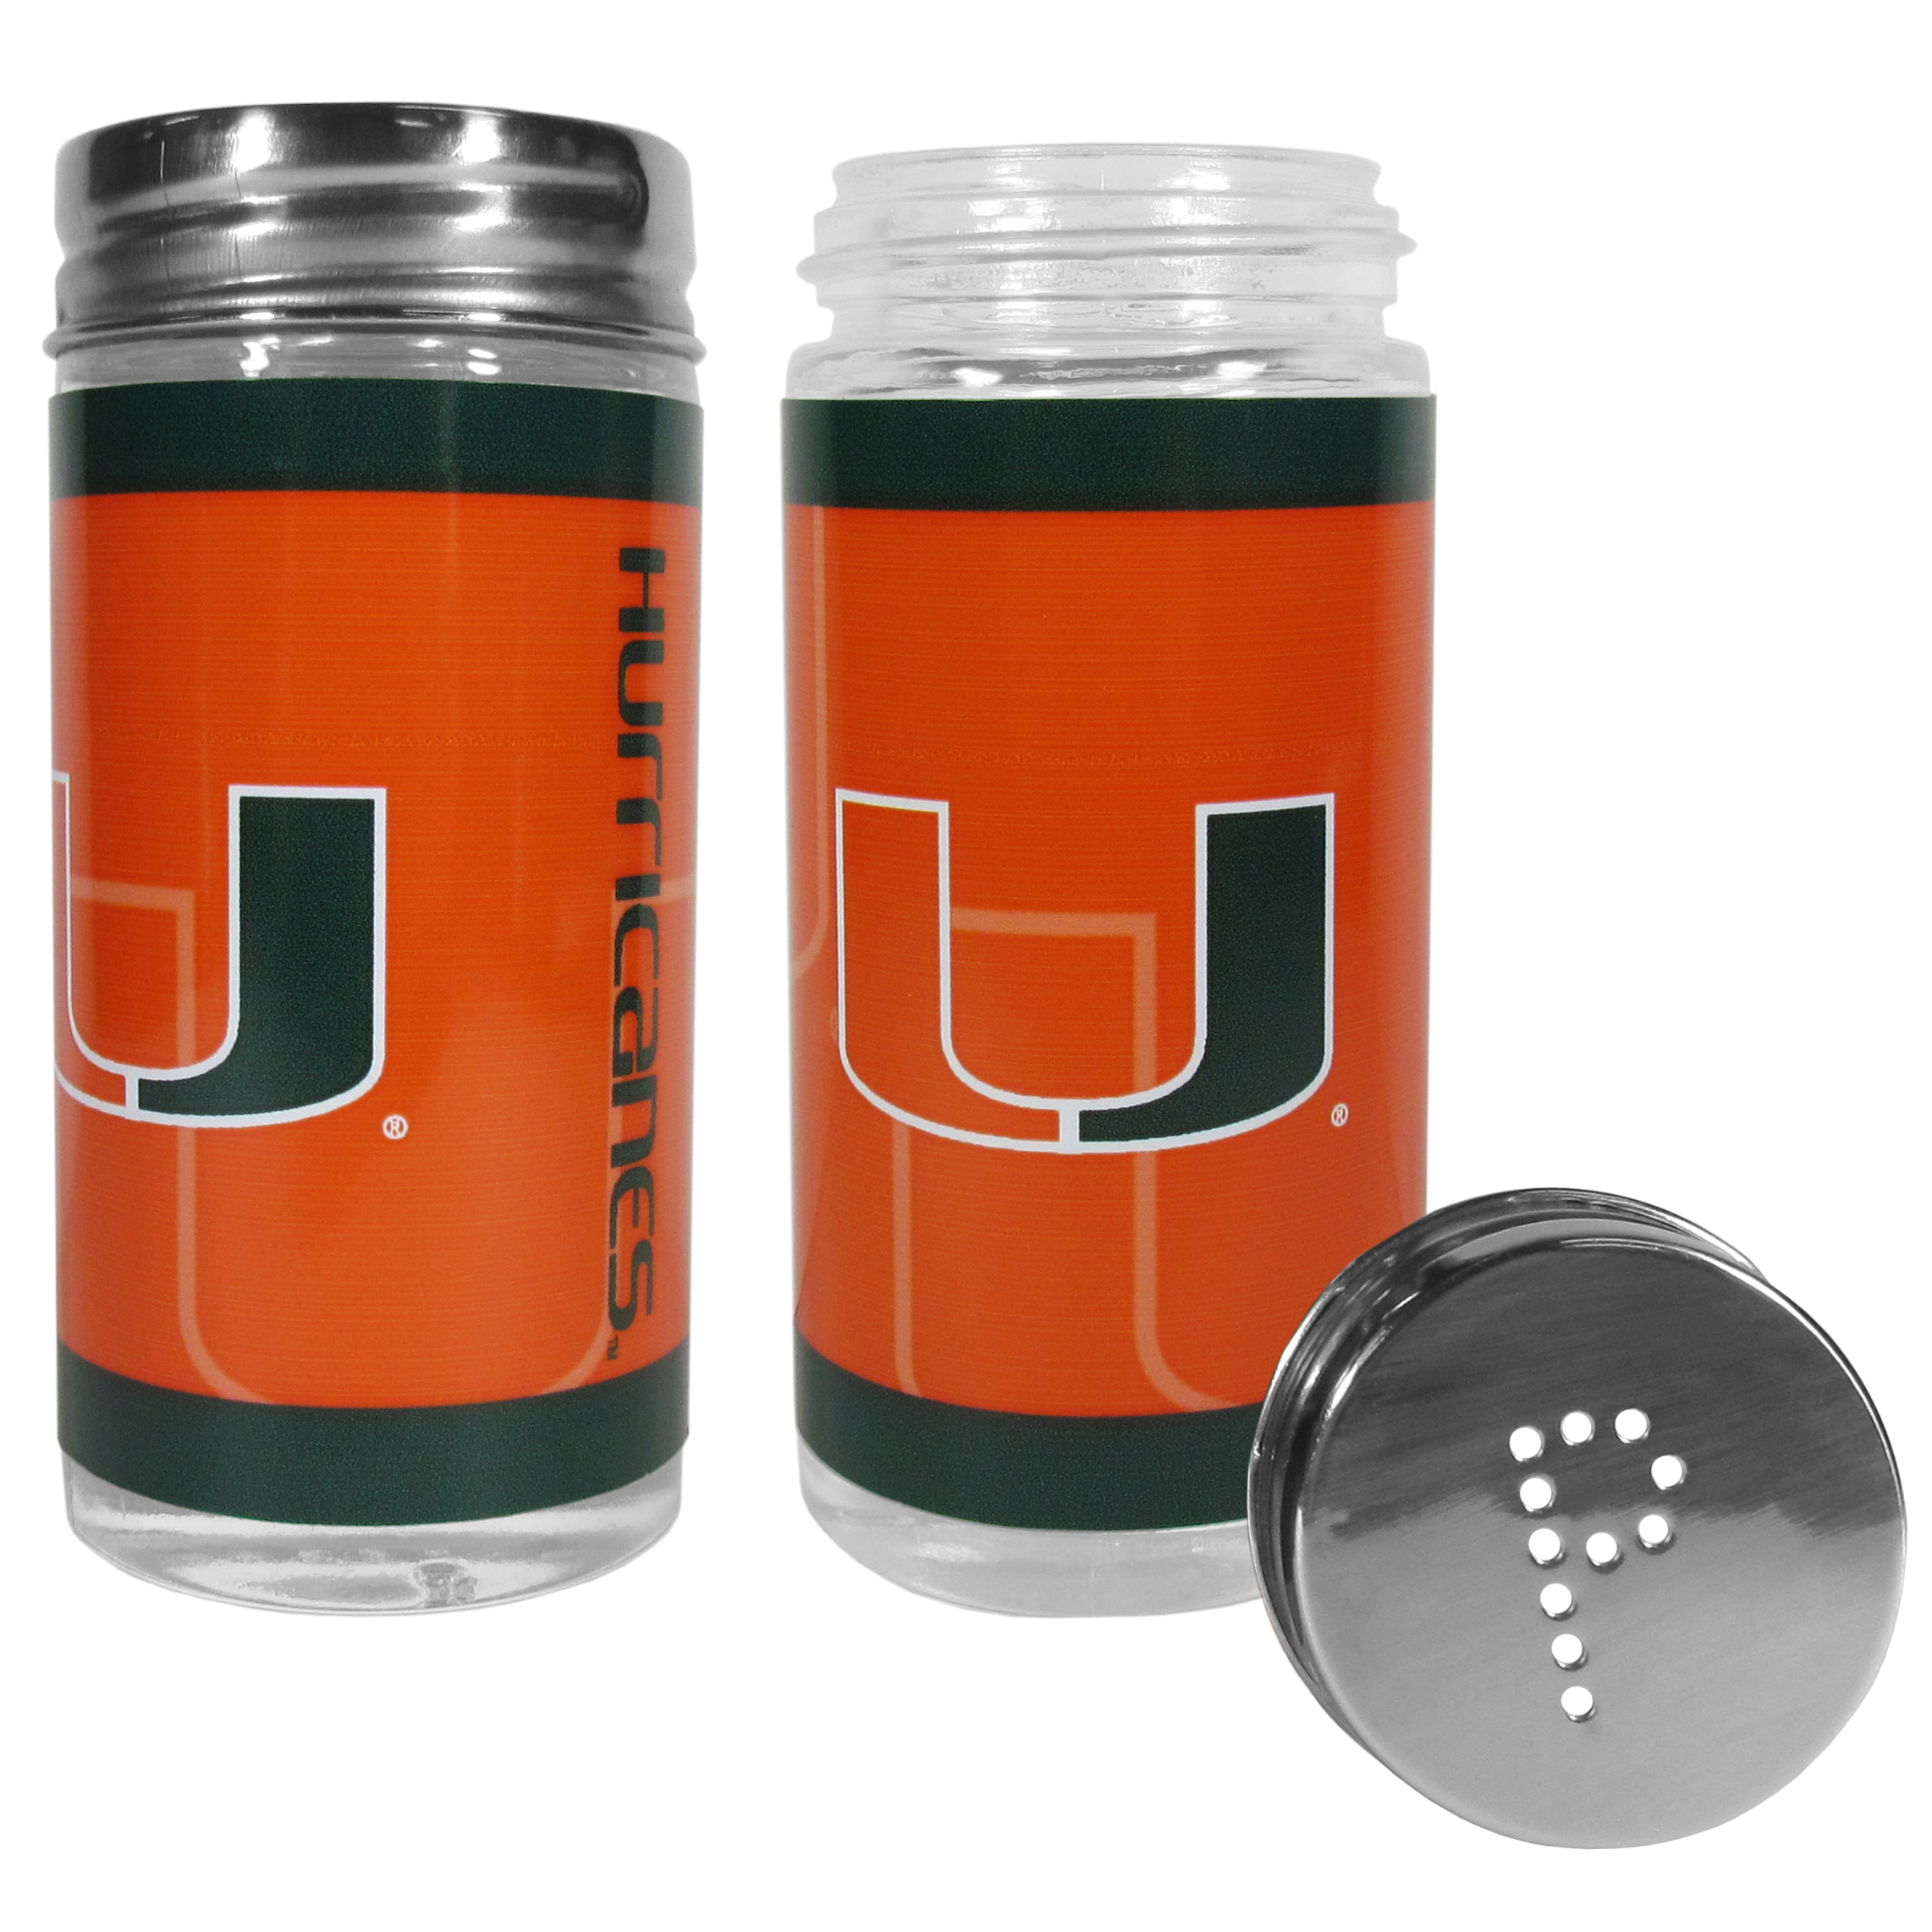 Miami Hurricanes Tailgater Salt & Pepper Shakers - No tailgate party is complete without your Miami Hurricanes salt & pepper shakers featuring bright team graphics. The glass shakers are 3.75 inches tall and the screw top lids have holes that spell out P and S. These team shakers are a great grill accessory whether you are barbecuing on the patio, picnicing or having a game day party.